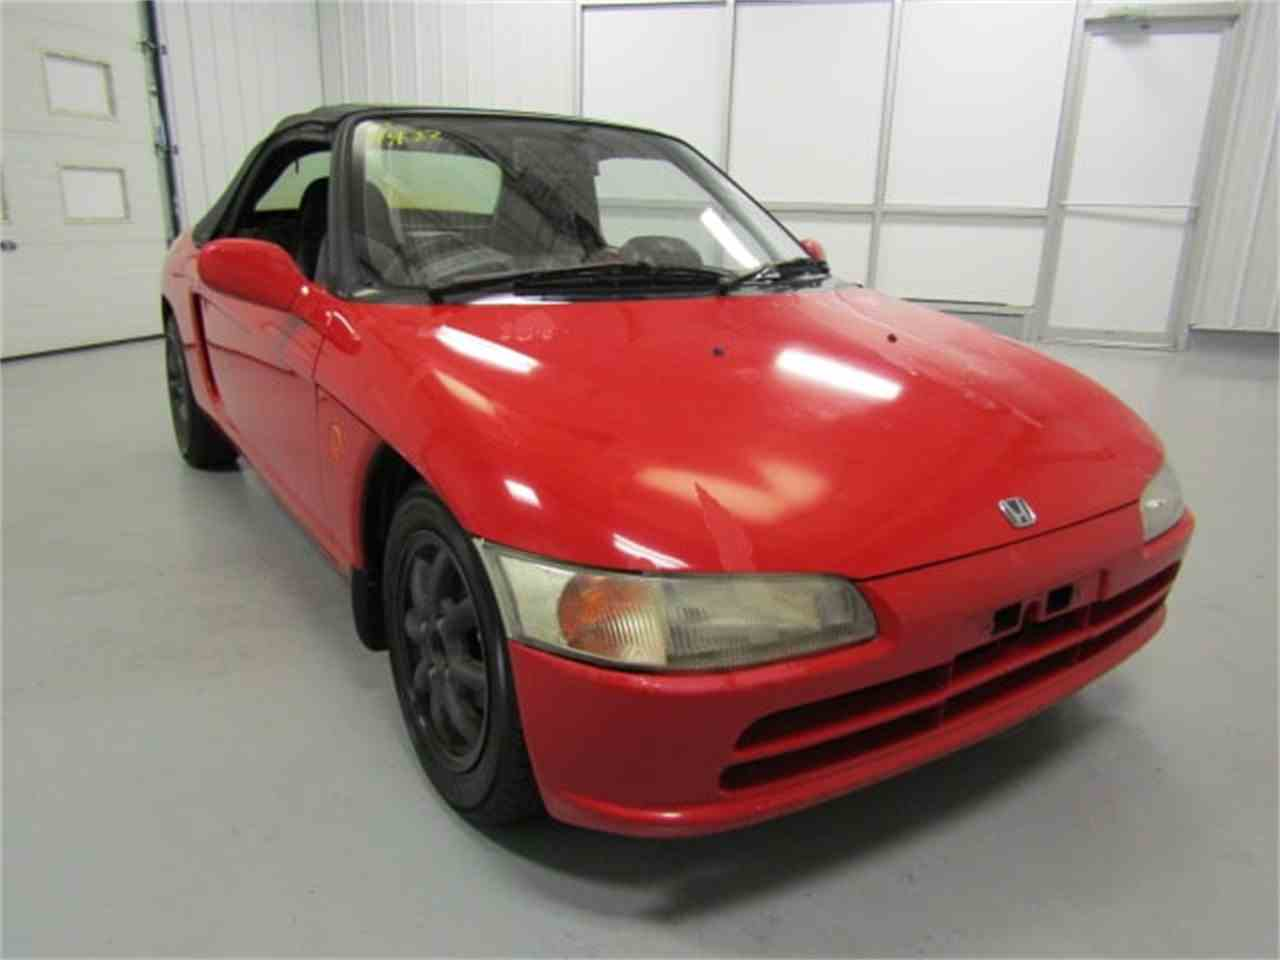 Large Picture of '91 Honda Beat located in Virginia - $5,959.00 Offered by Duncan Imports & Classic Cars - JL8F